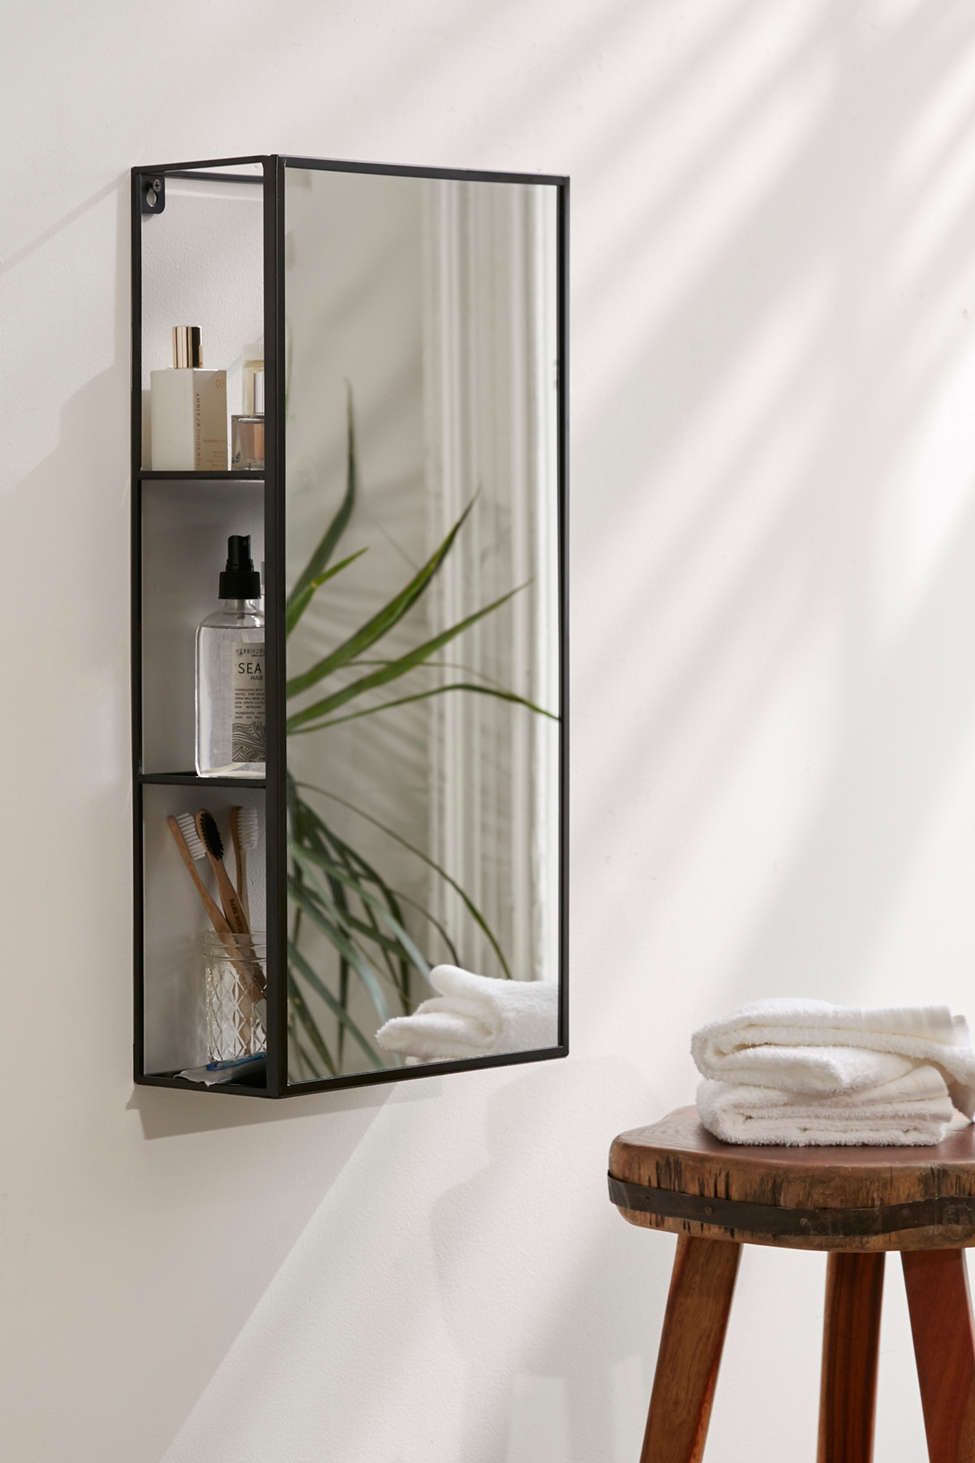 Slide View: 1: Cubiko Storage Mirror